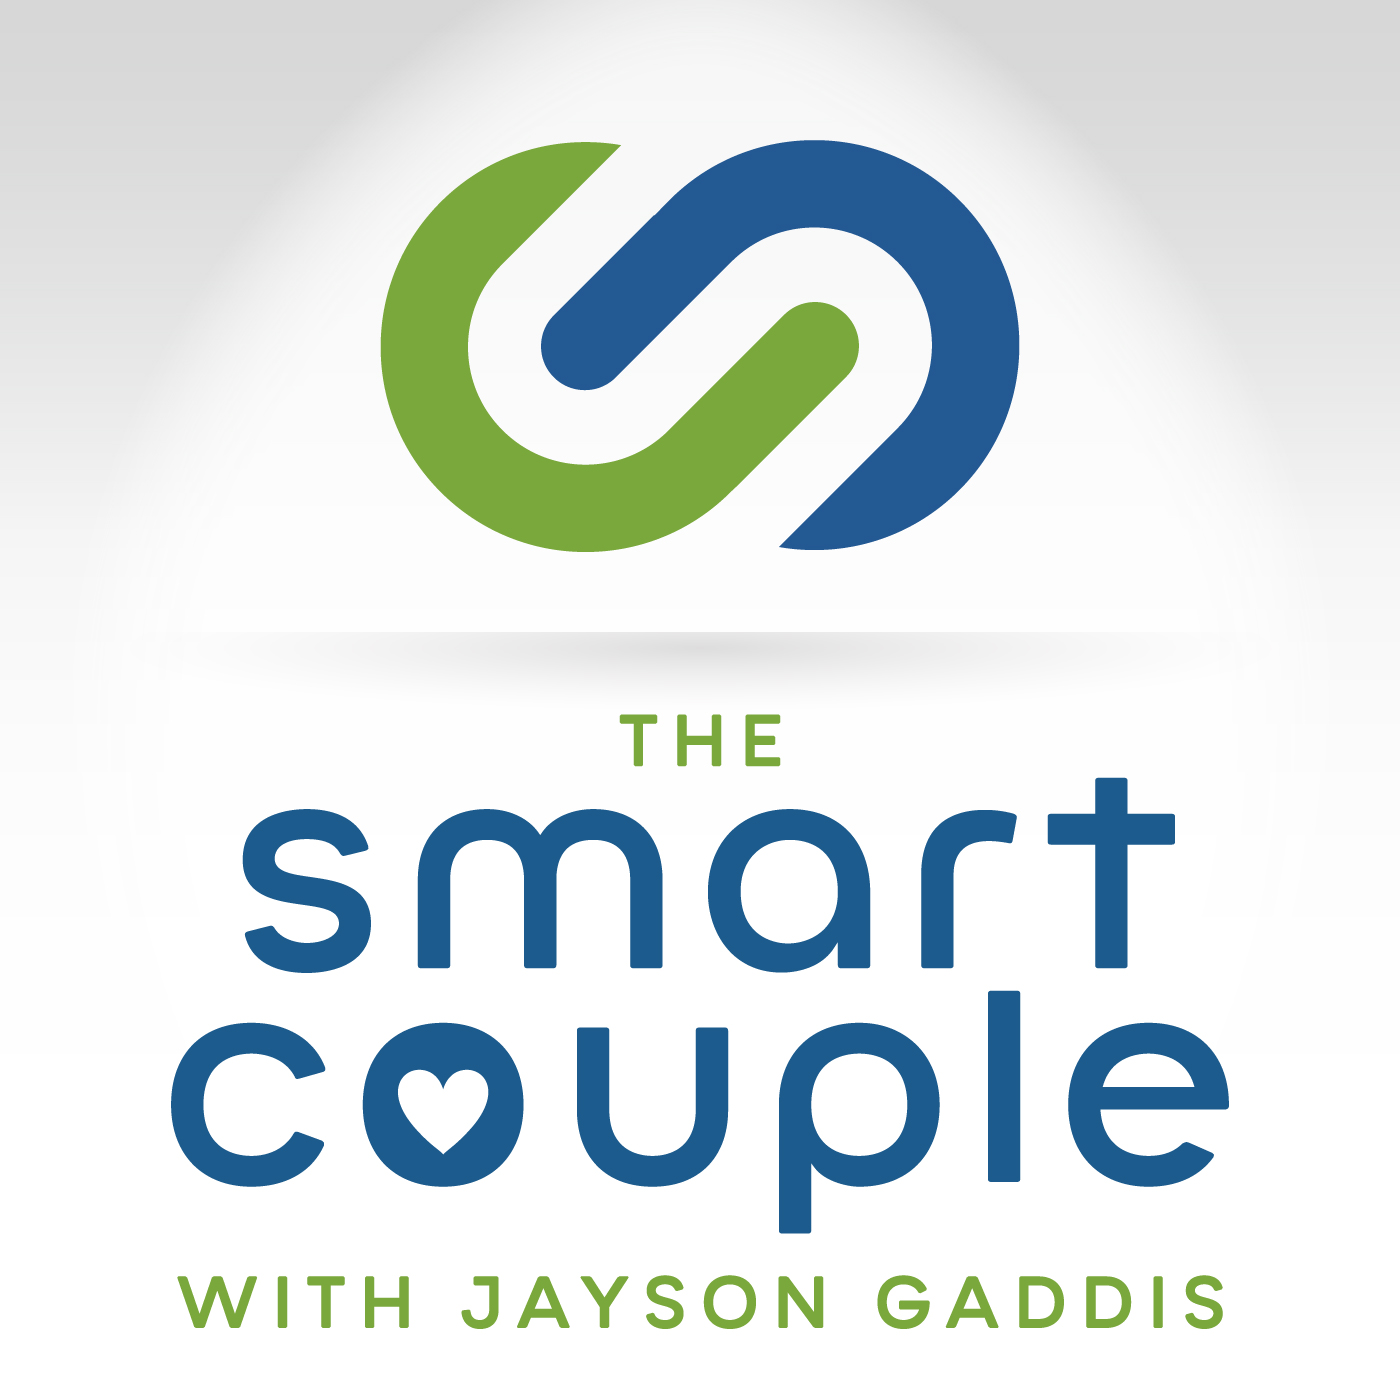 The Relationship School Podcast - How To Deal With Emotional Triggers In An Intimate Partnership- S tan Tatkin - Smart Couple Podcast #220